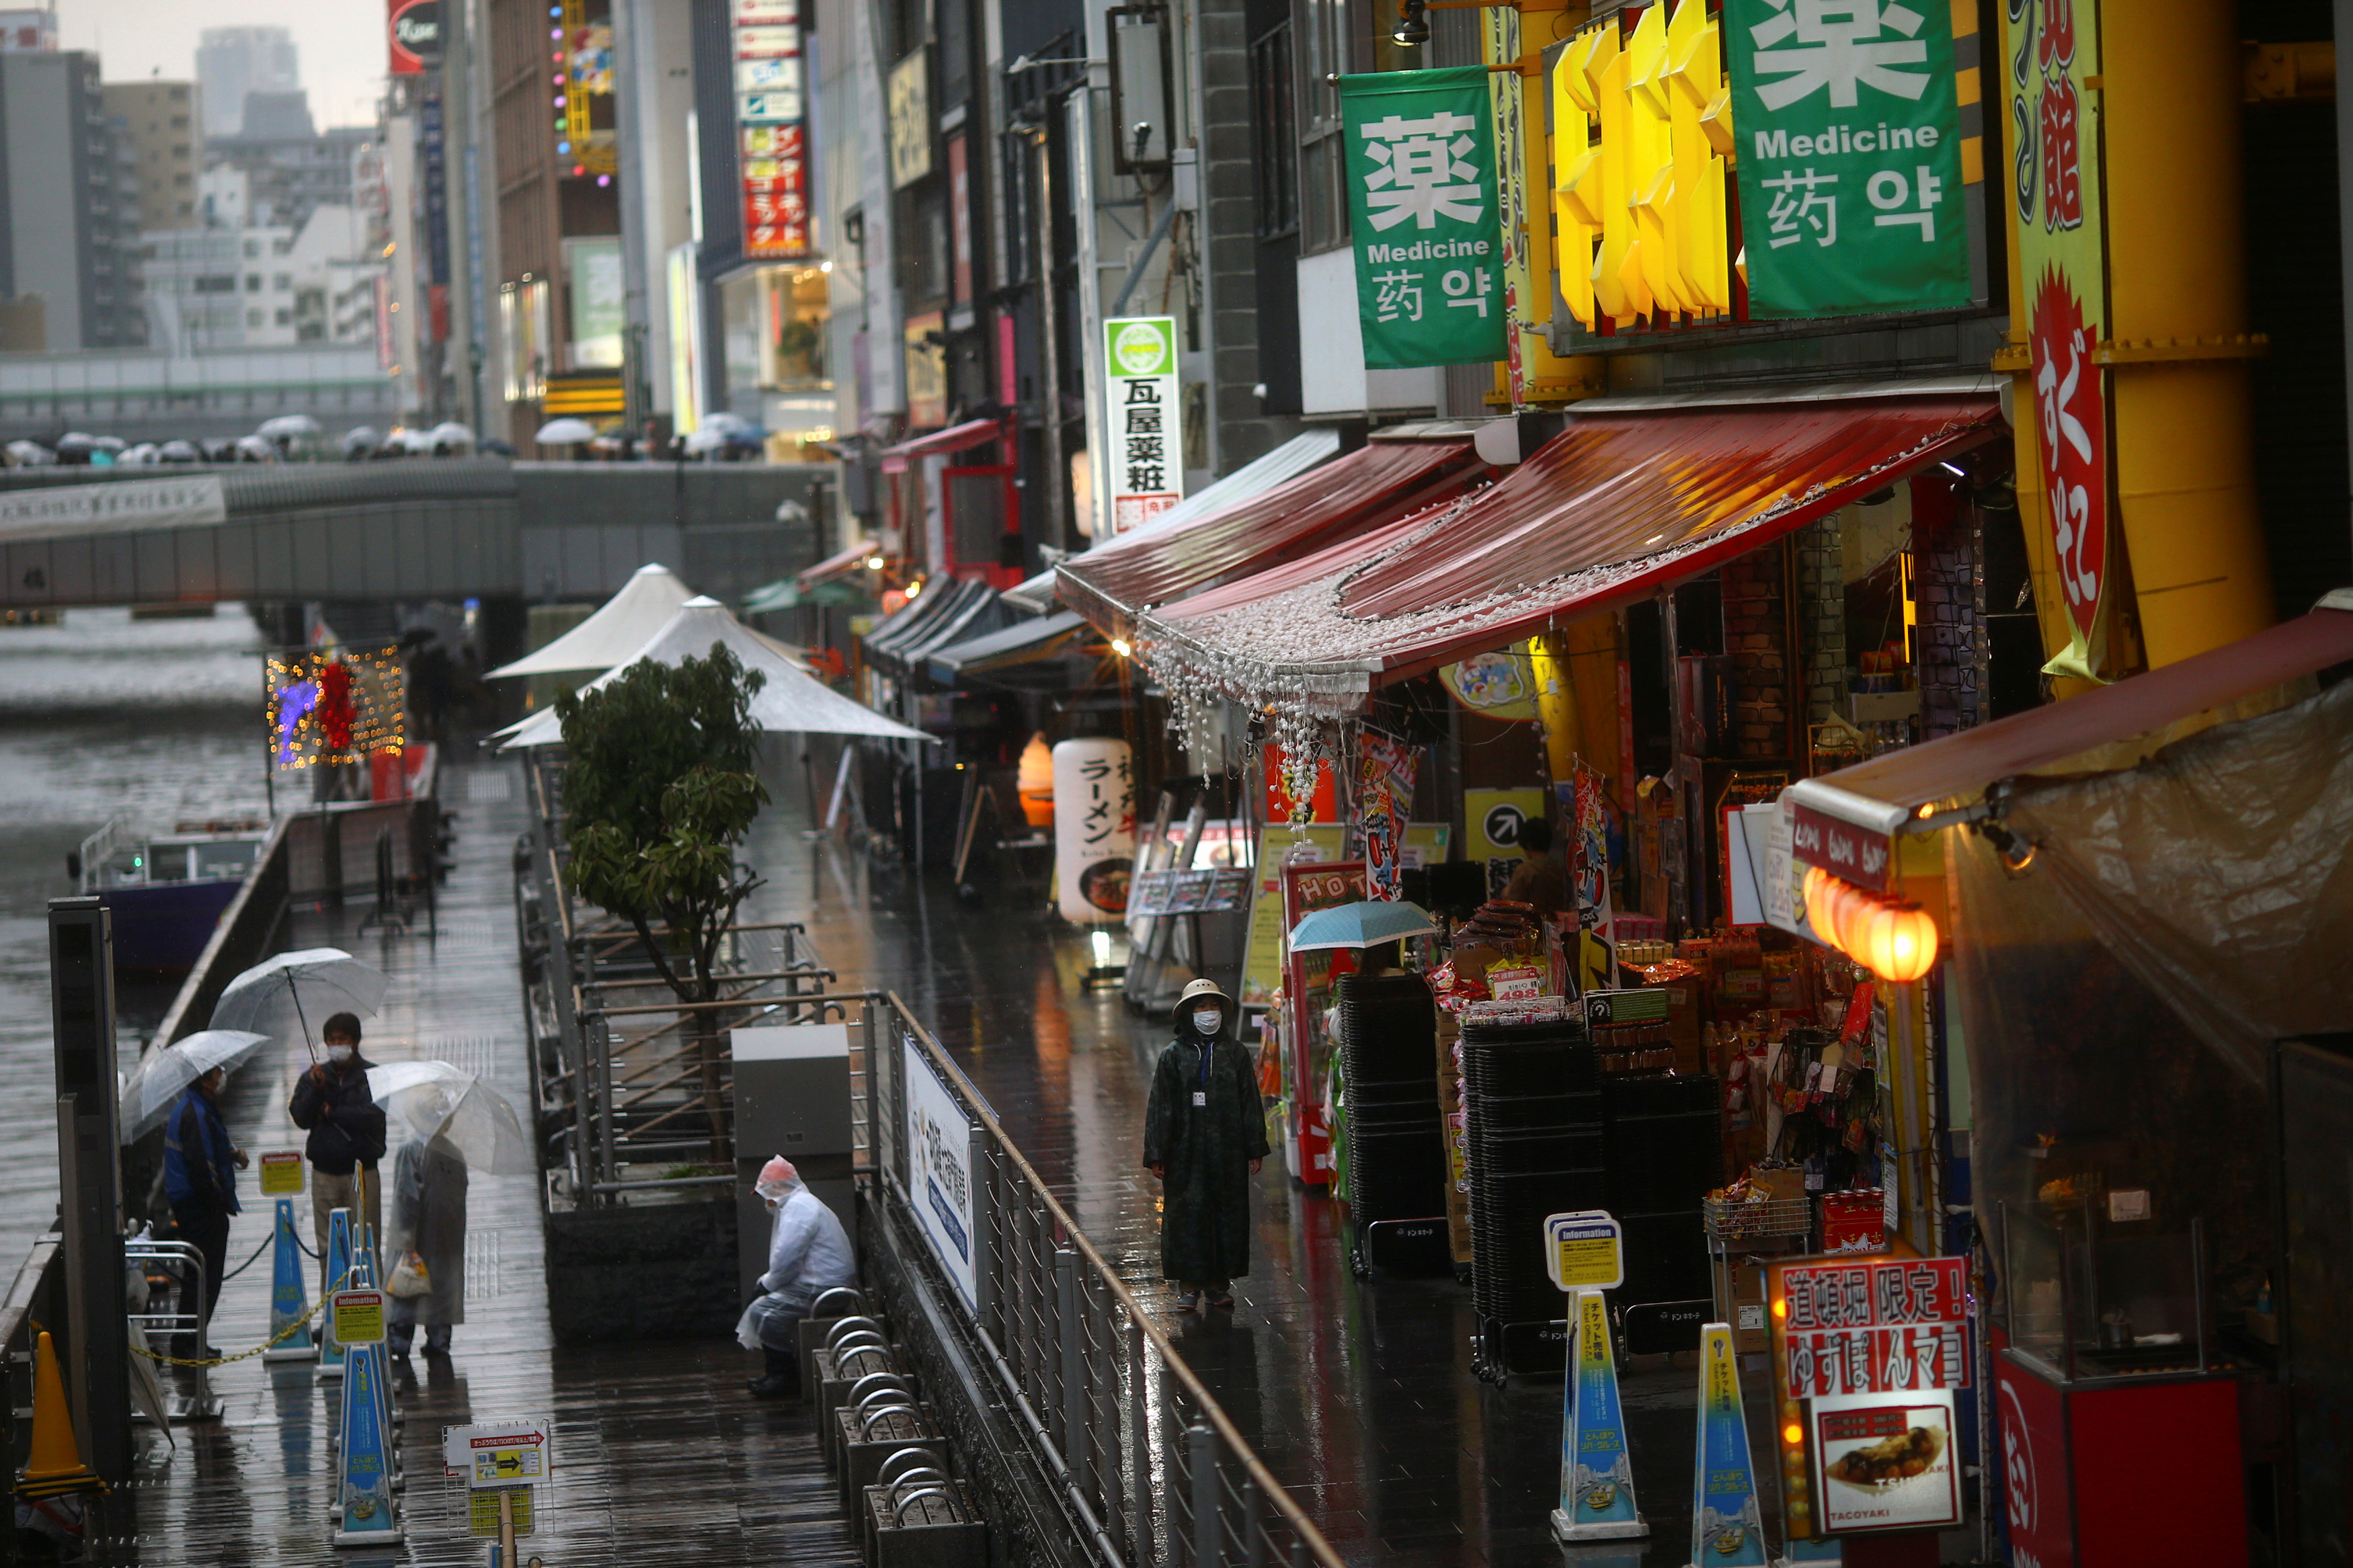 A woman, wearing protective mask following an outbreak of the coronavirus disease (COVID-19), walks on an almost empty street in the Dotonbori entertainment district of Osaka, Japan, March 14, 2020.   REUTERS/Edgard Garrido